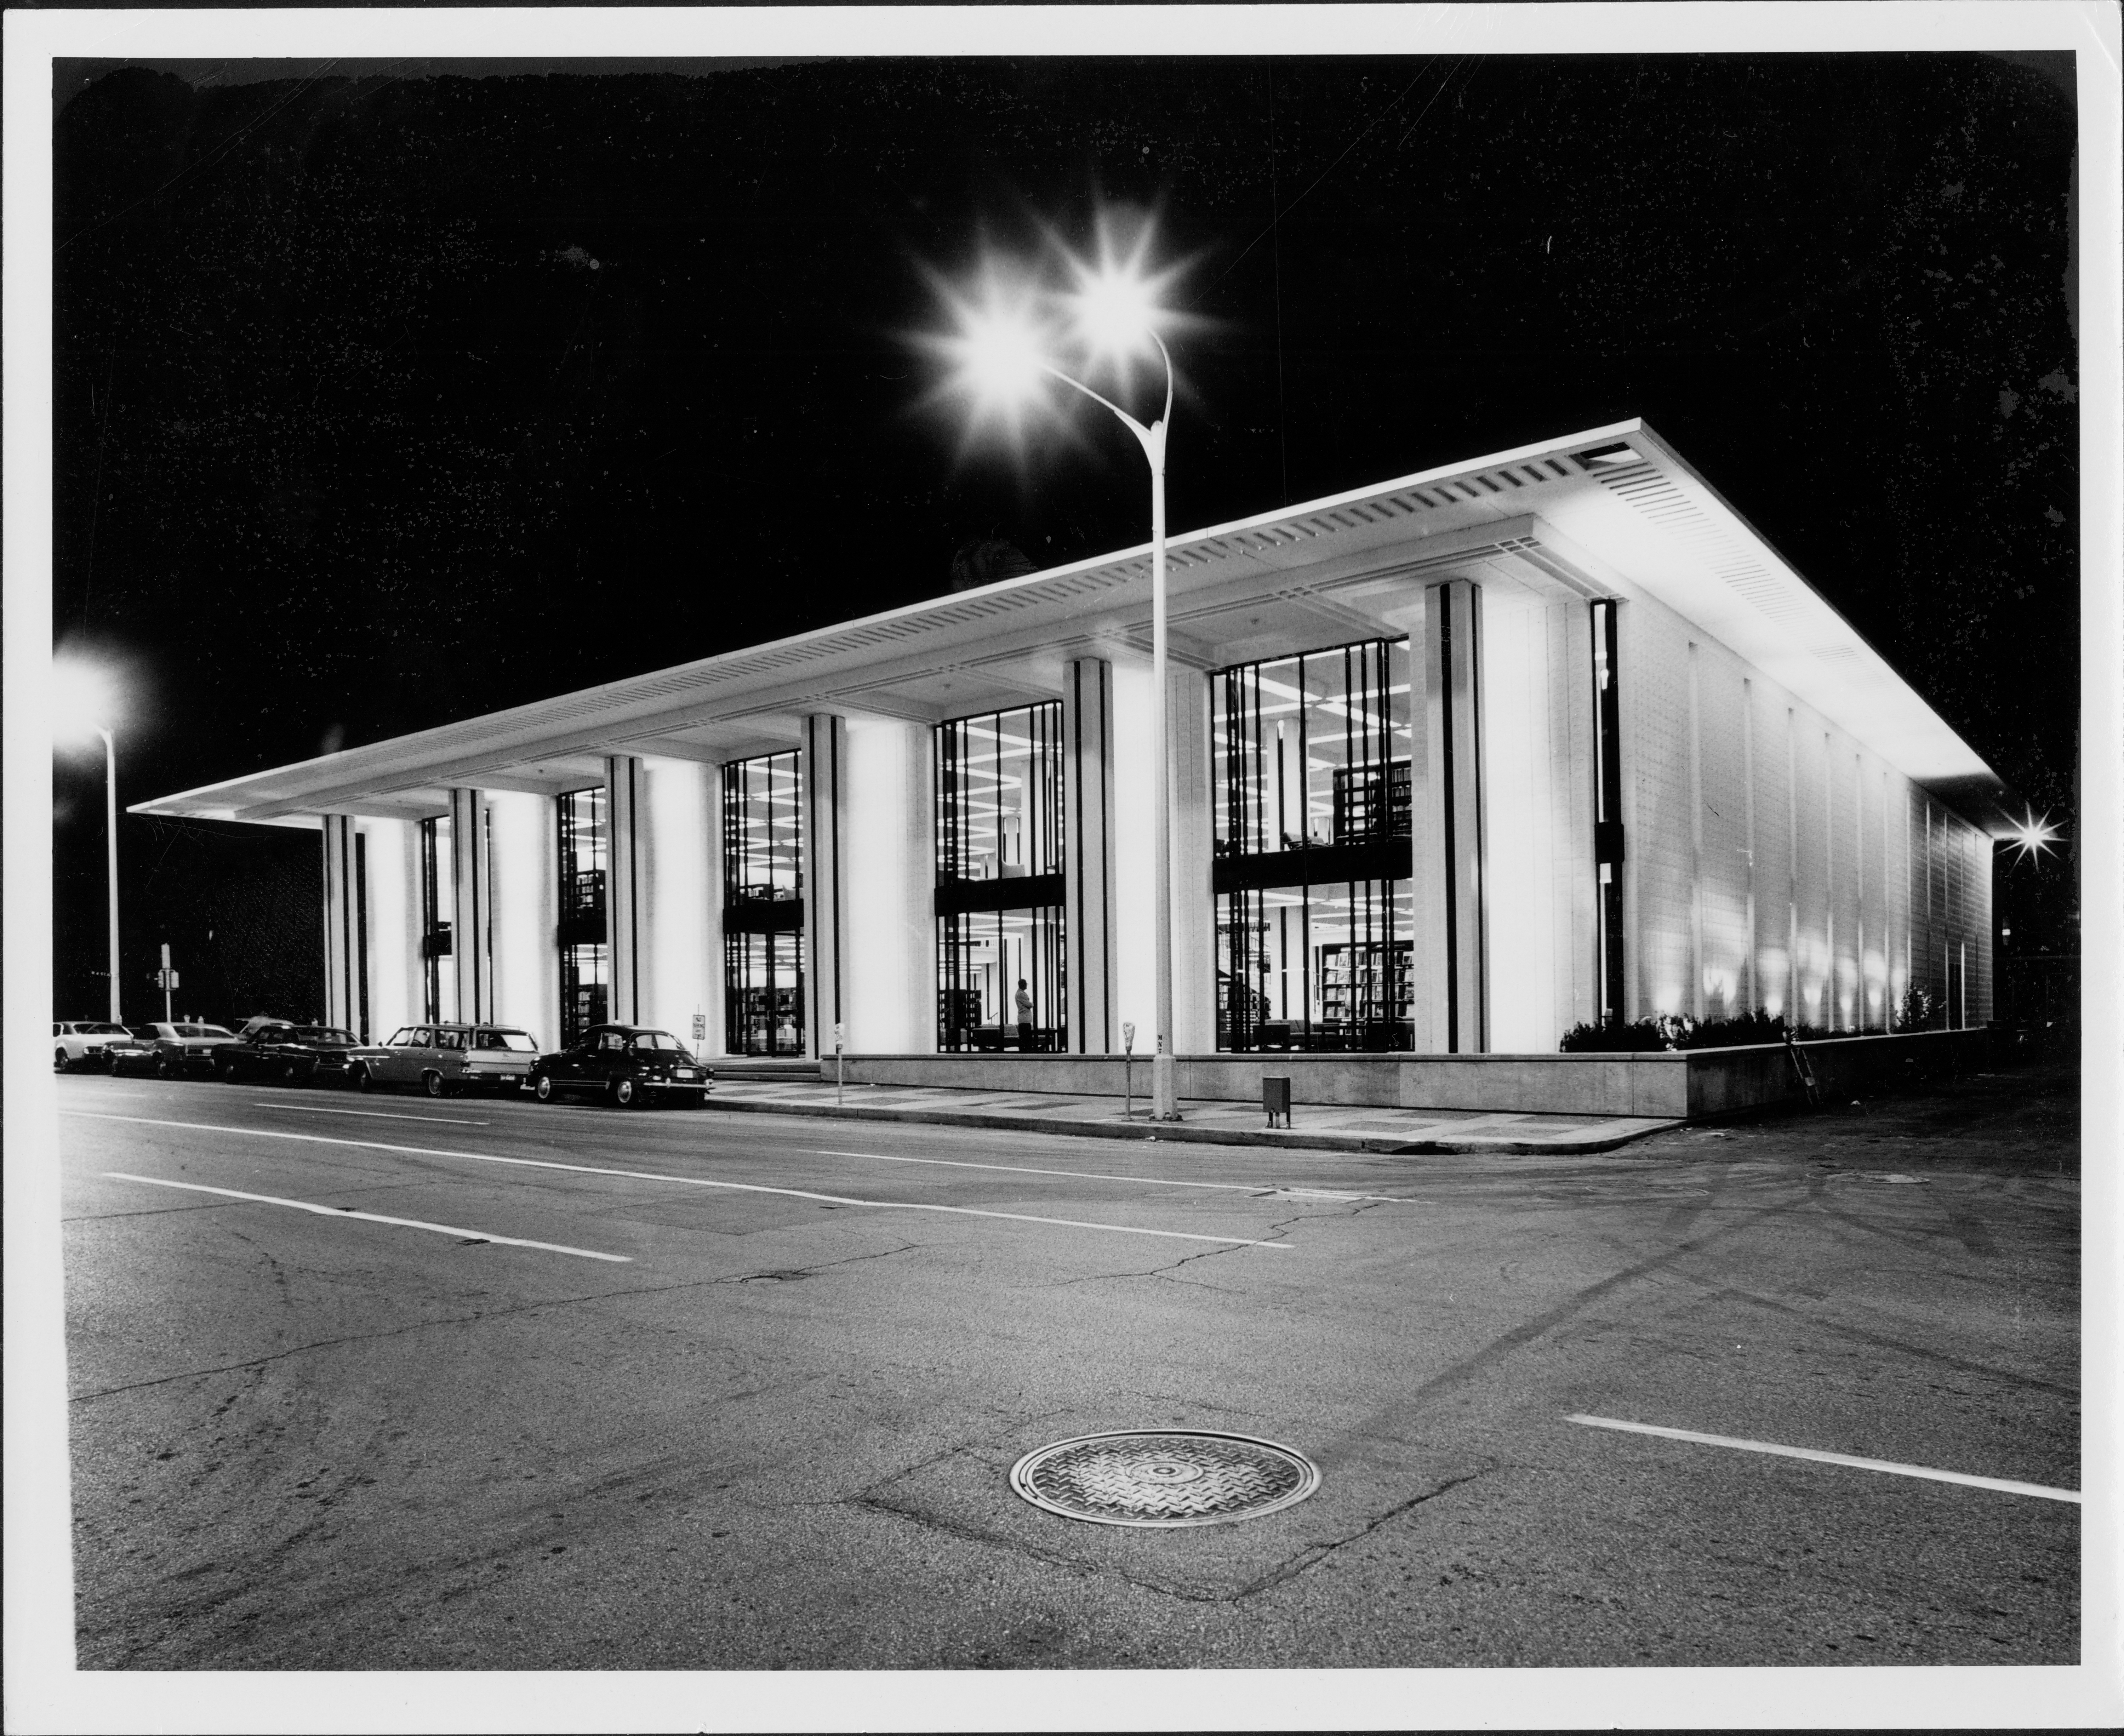 Construction and Opening of Davenport Public Library's new building, designed by Edward Durell Stone, 321 Main Street, downtown Davenport [1966-1968]